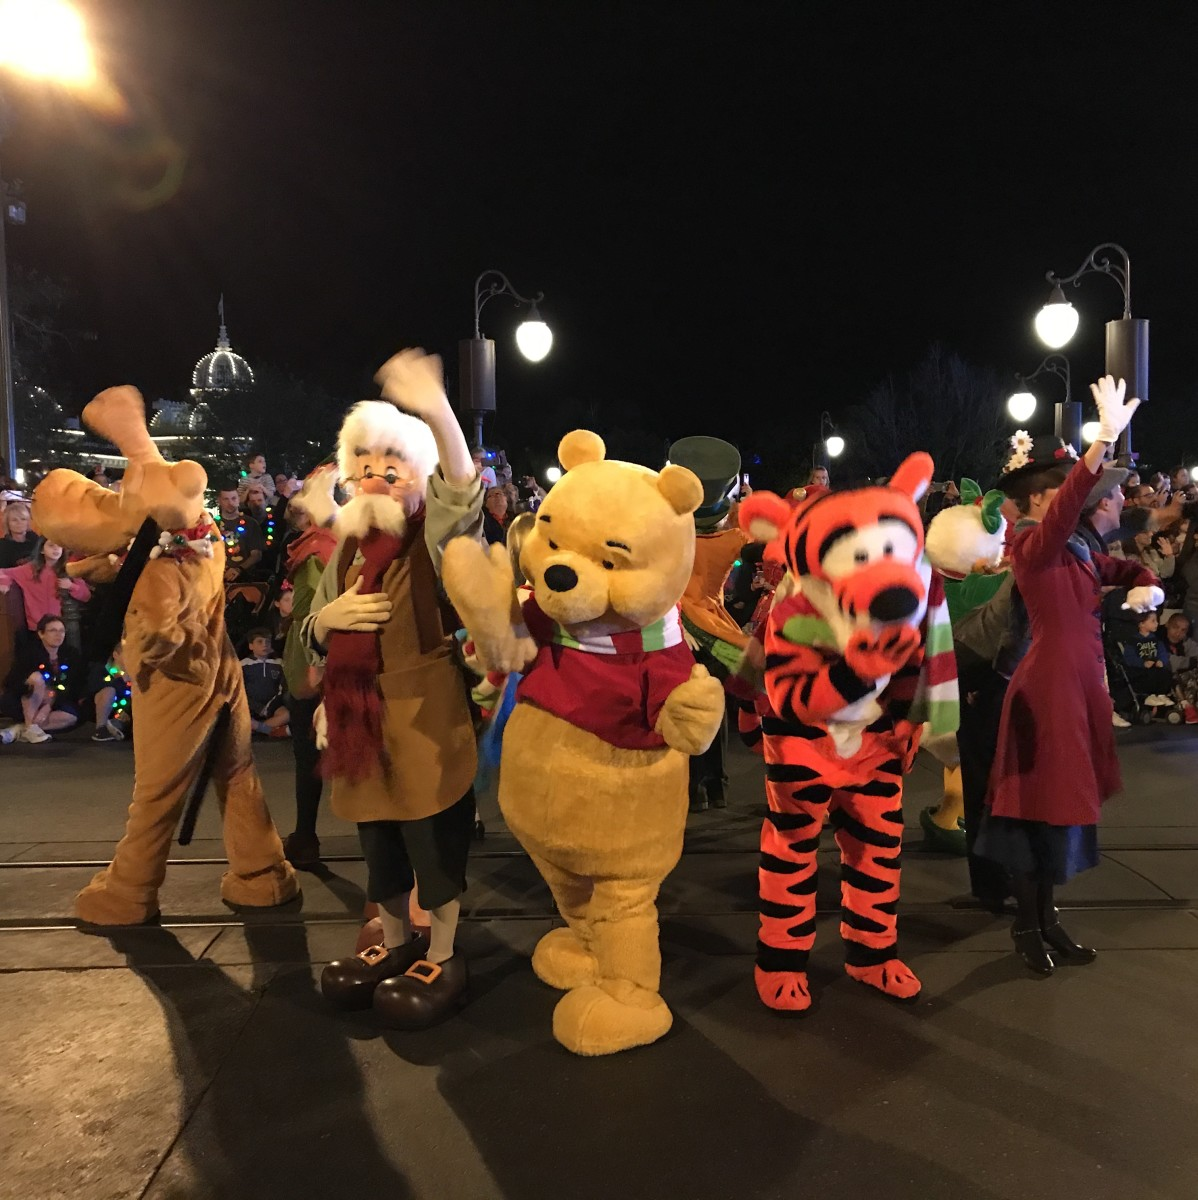 Just a few of the characters decked out in their holiday best for the parade during Mickey's Very Merry Christmas Party.